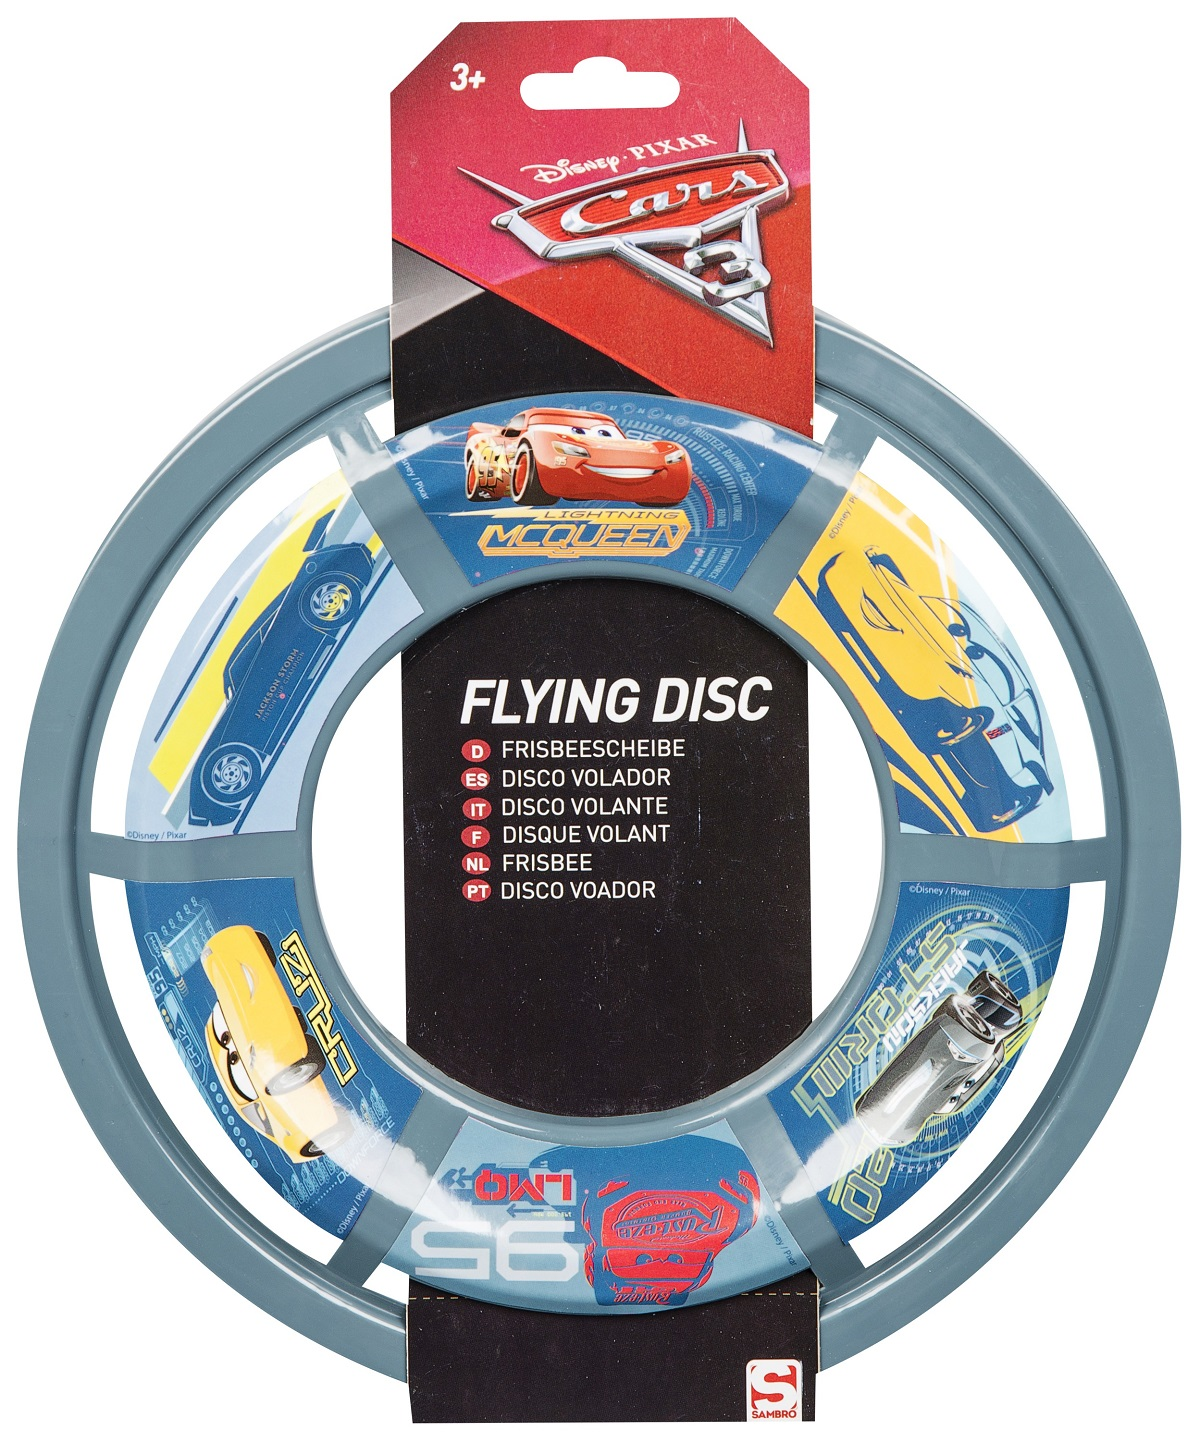 Cars Mcqeen Frisbee Flying Disc